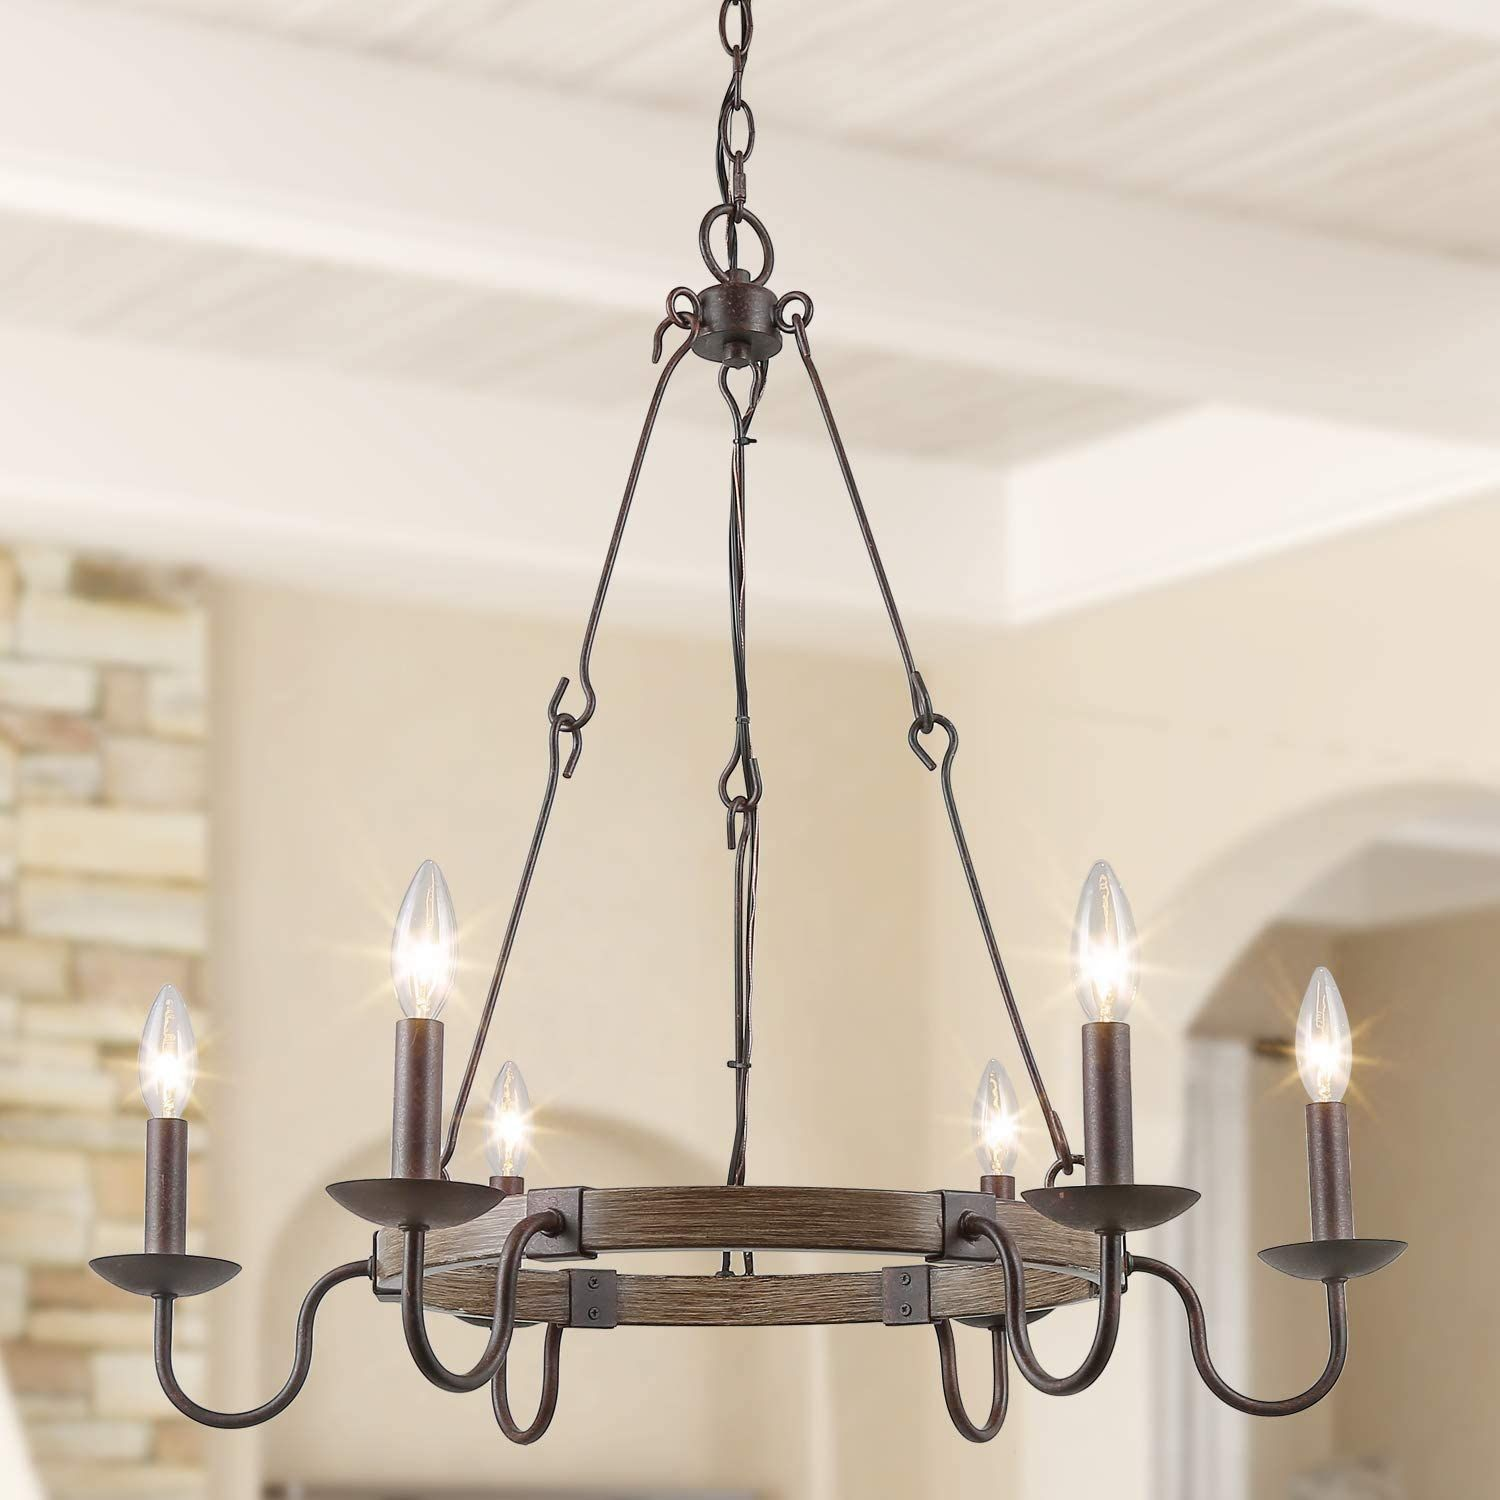 Log Barn Rustic French Country Chandelier Wagon Wheel Hanging Island Lighting For Kitchen In 2020 French Country Chandelier Country Chandelier Country Kitchen Lighting